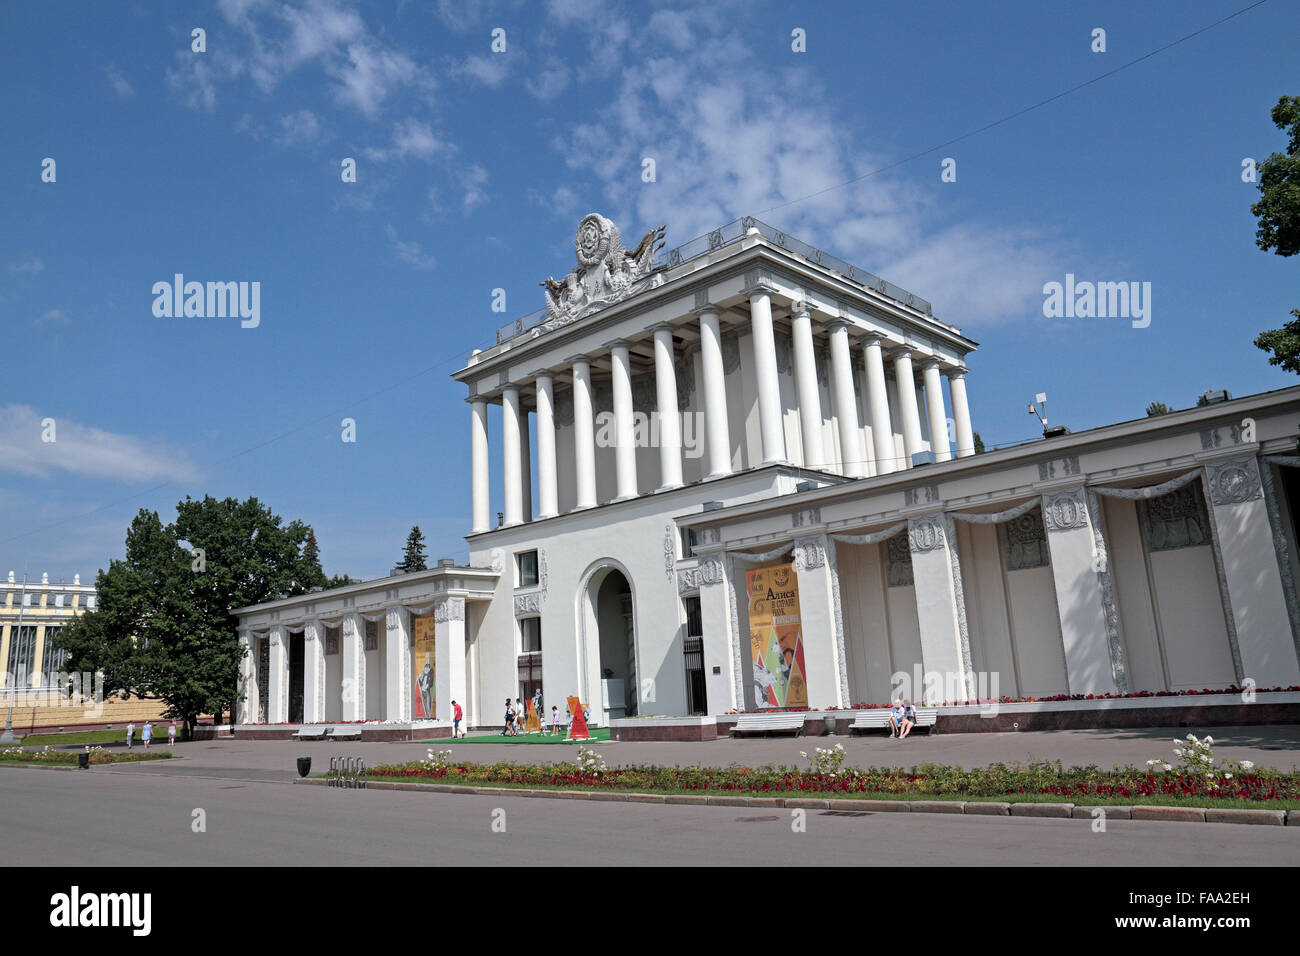 The Optics Pavilion in VDNKh, Moscow, Russia. - Stock Image